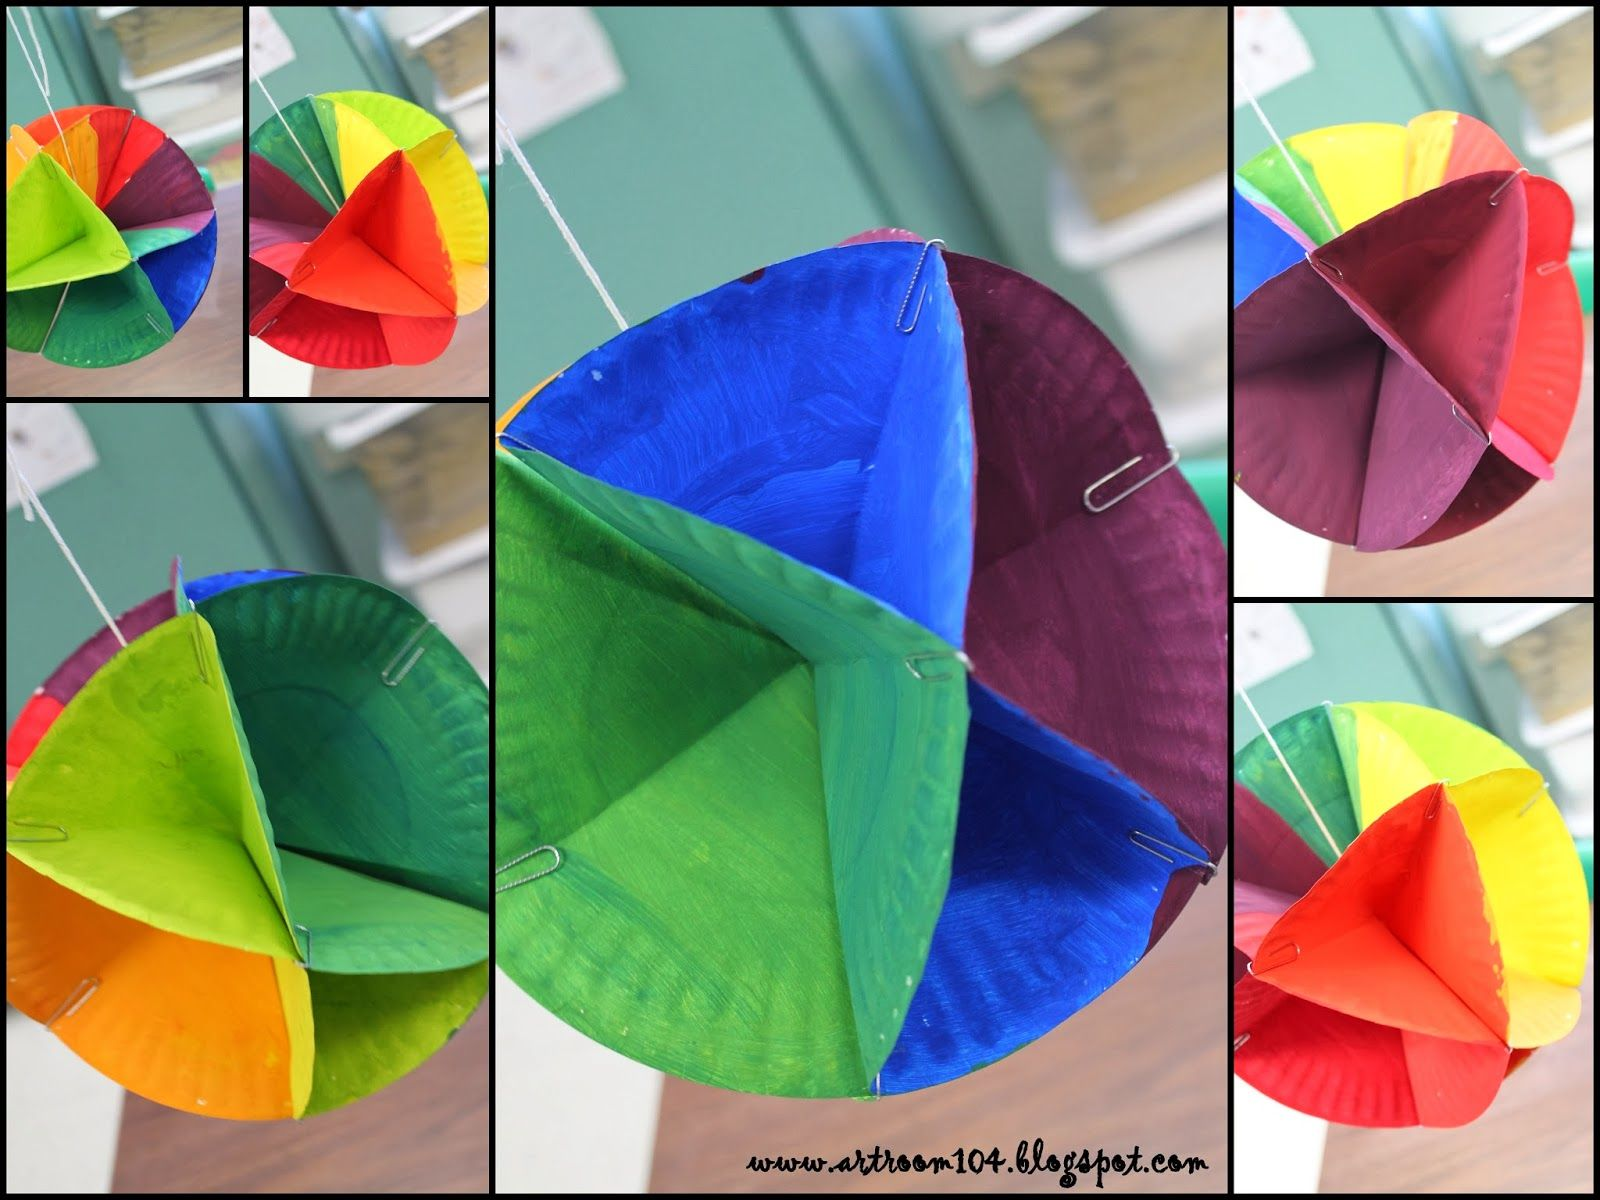 Color wheel art lesson for second grade - Art Room 104 5th Grade 3 D Color Wheel Tutorial Nice Sculptural